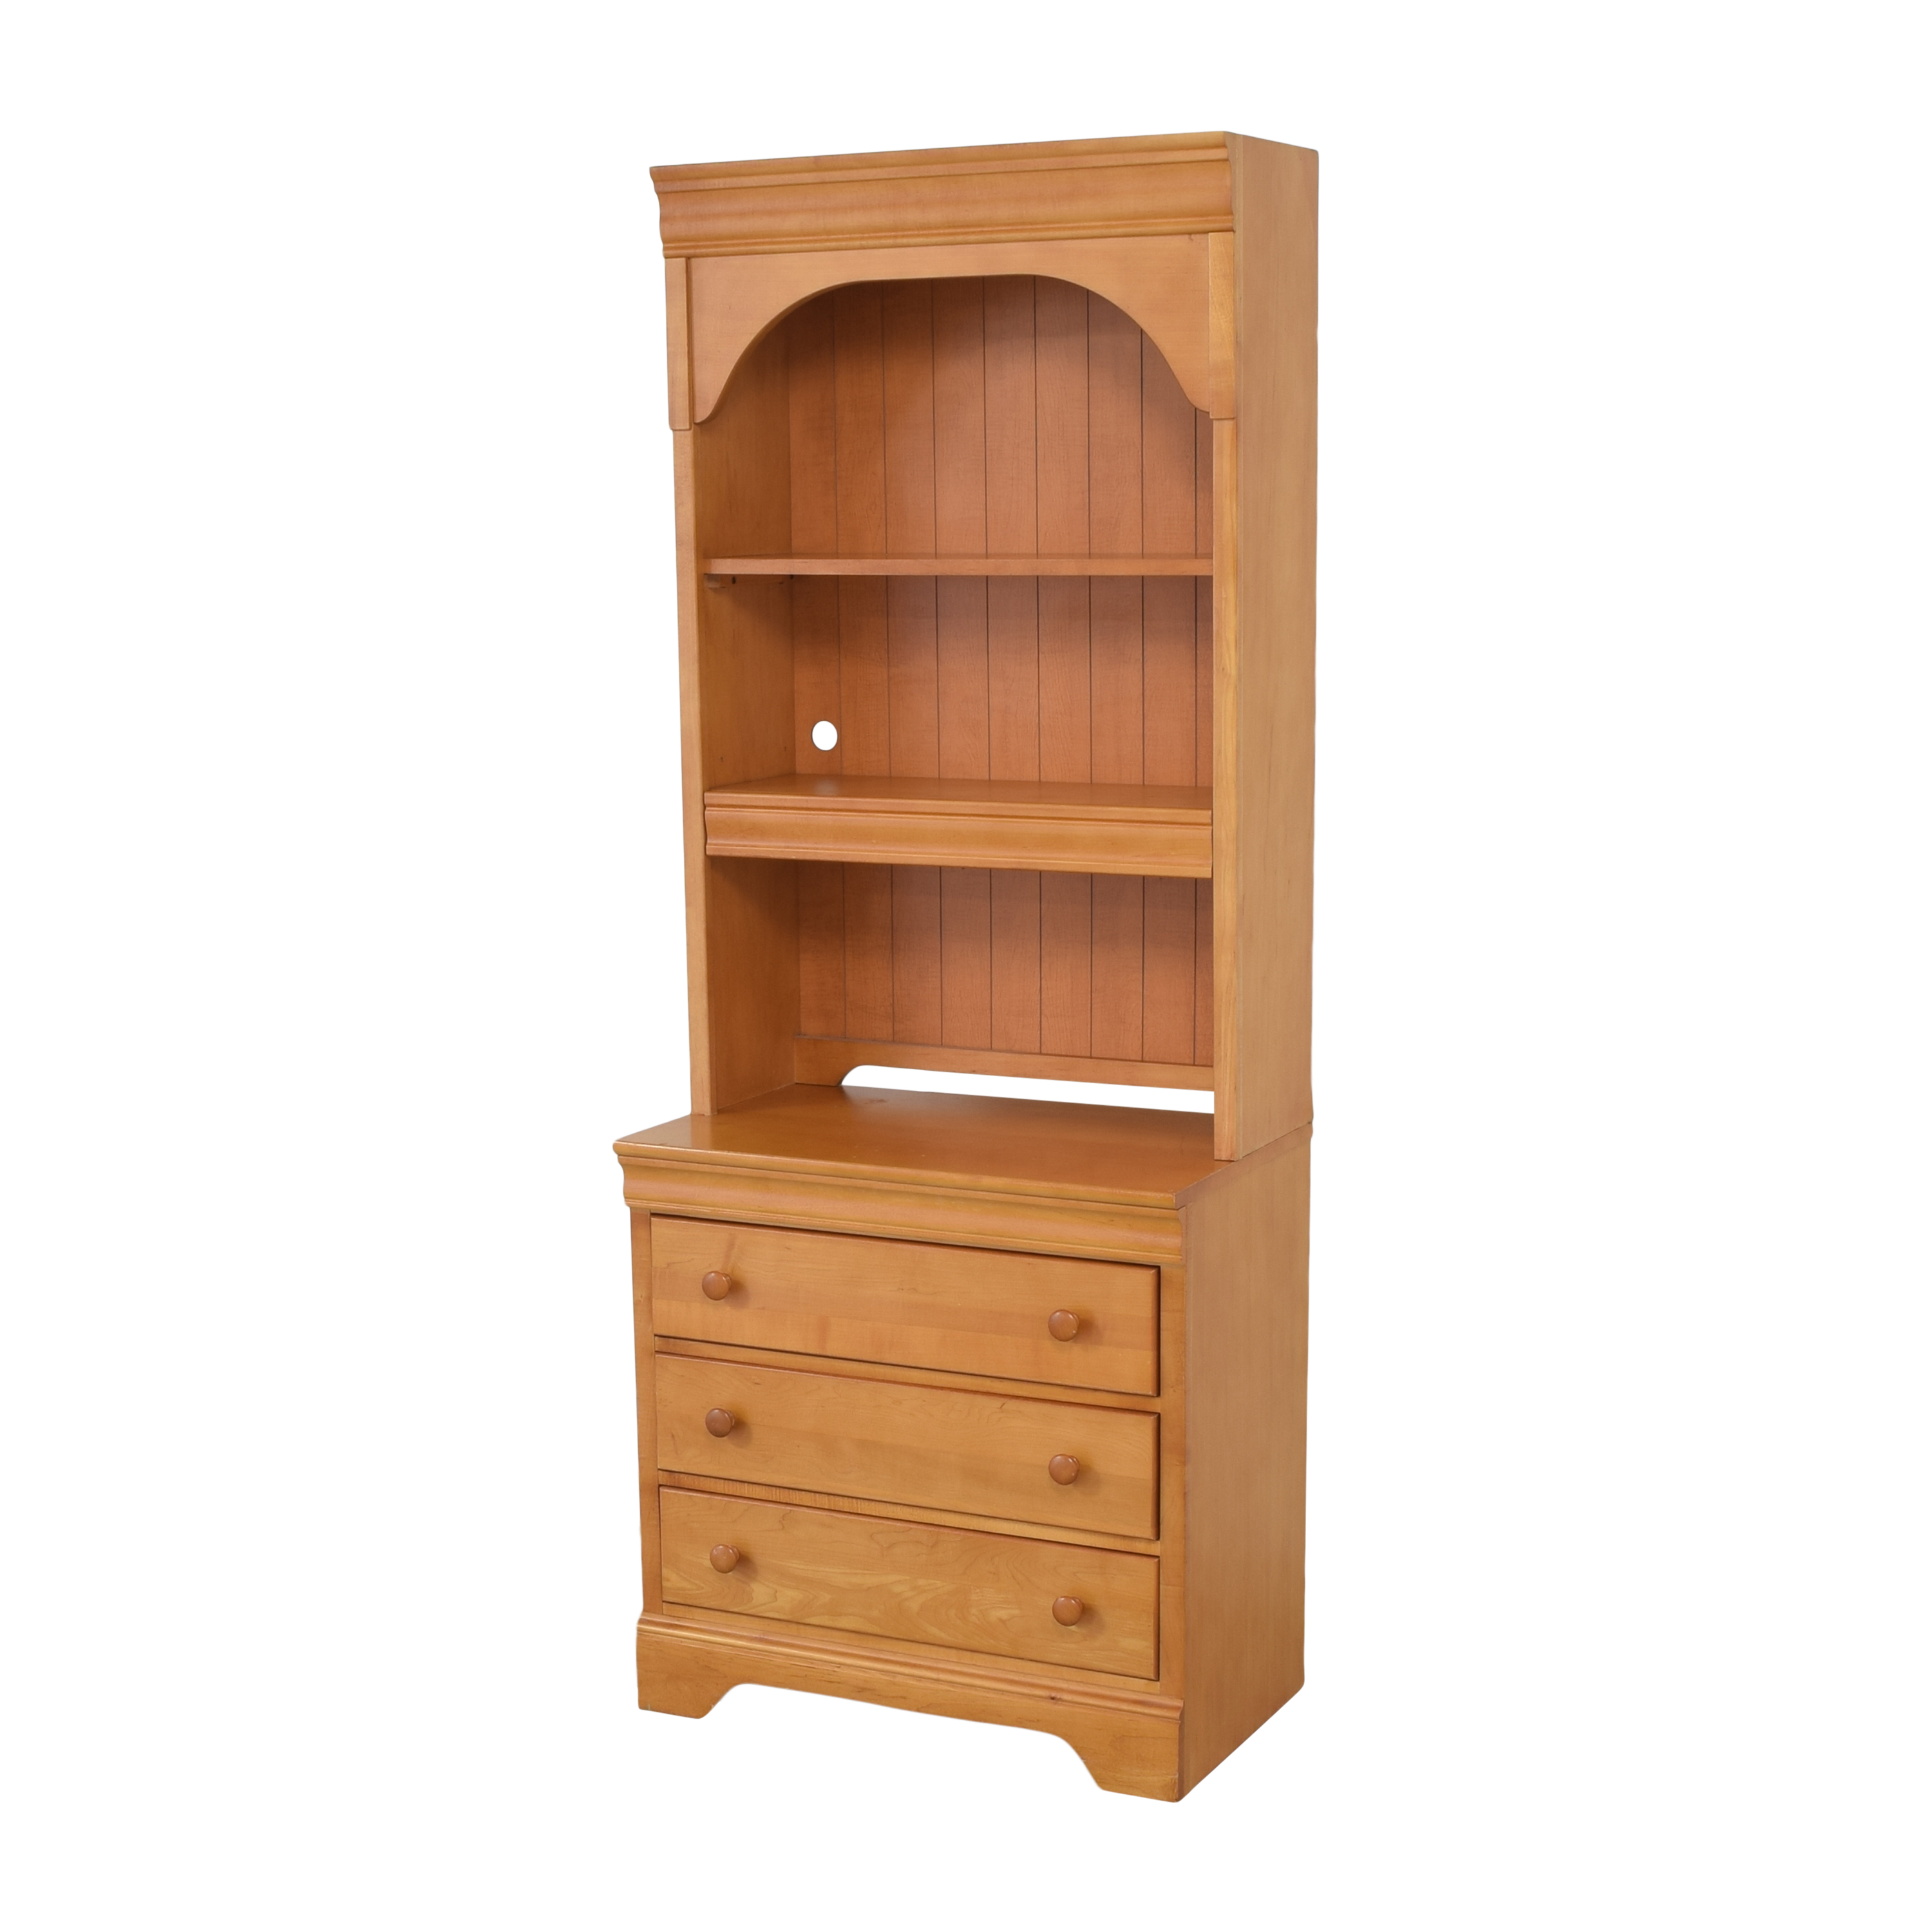 Stanley Furniture Stanley Young America Dresser with Hutch